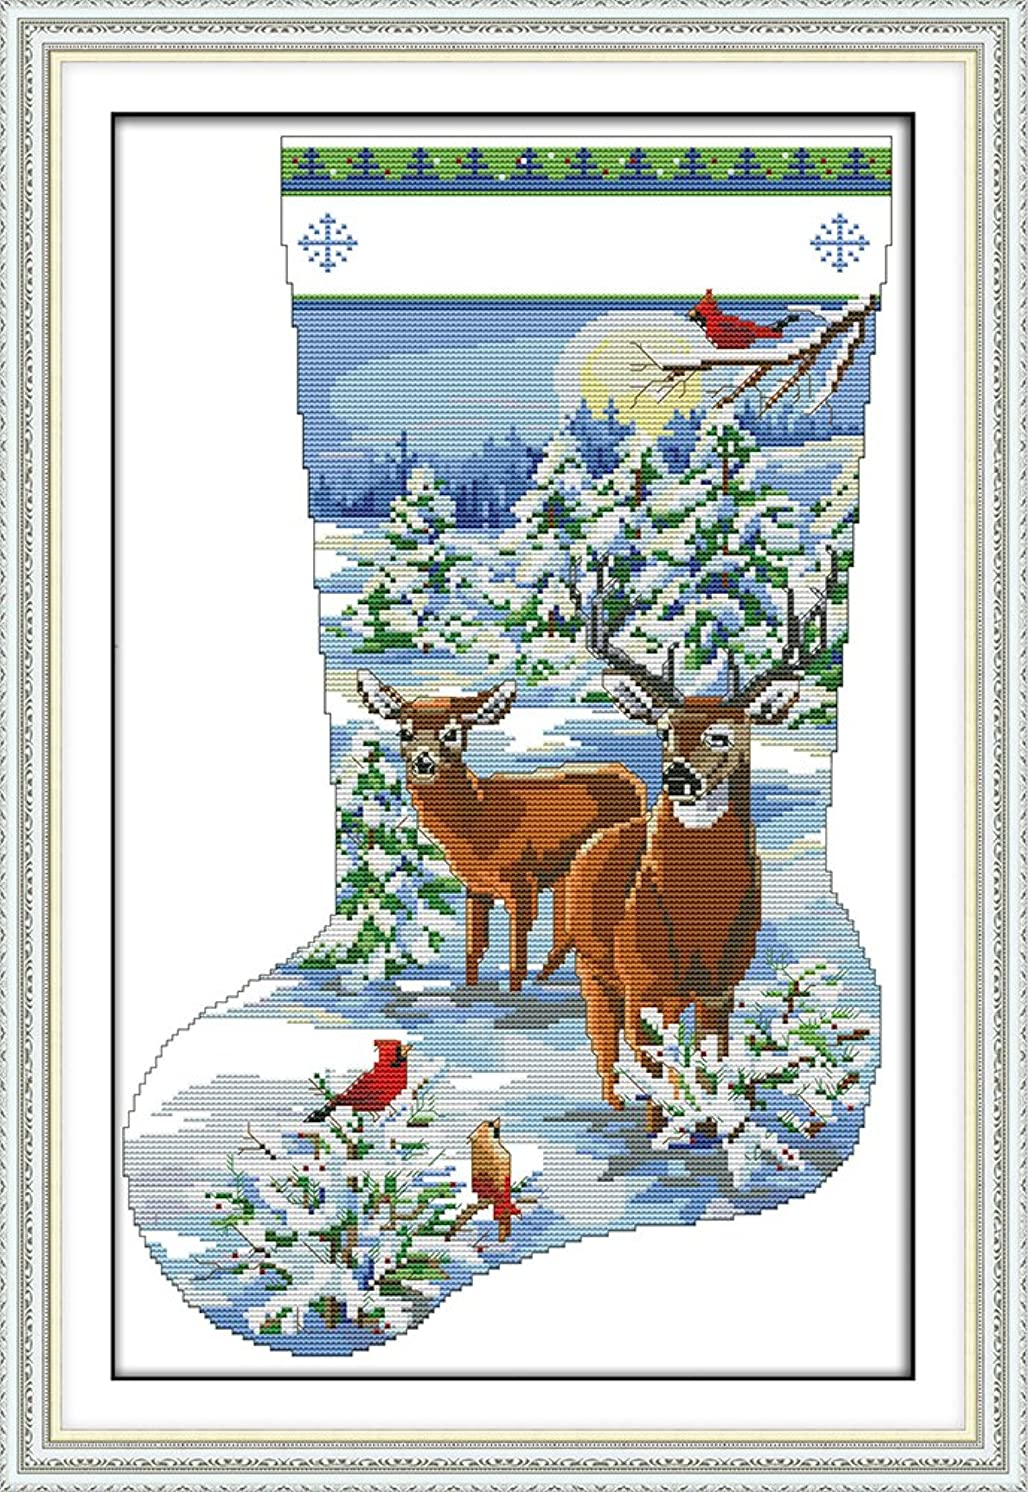 CaptainCrafts Hot New Cross Stitch Kits Needlecrafts Patterns Counted Embroidery Kit - Elk Deer Christmas Stocking (STAMPED)